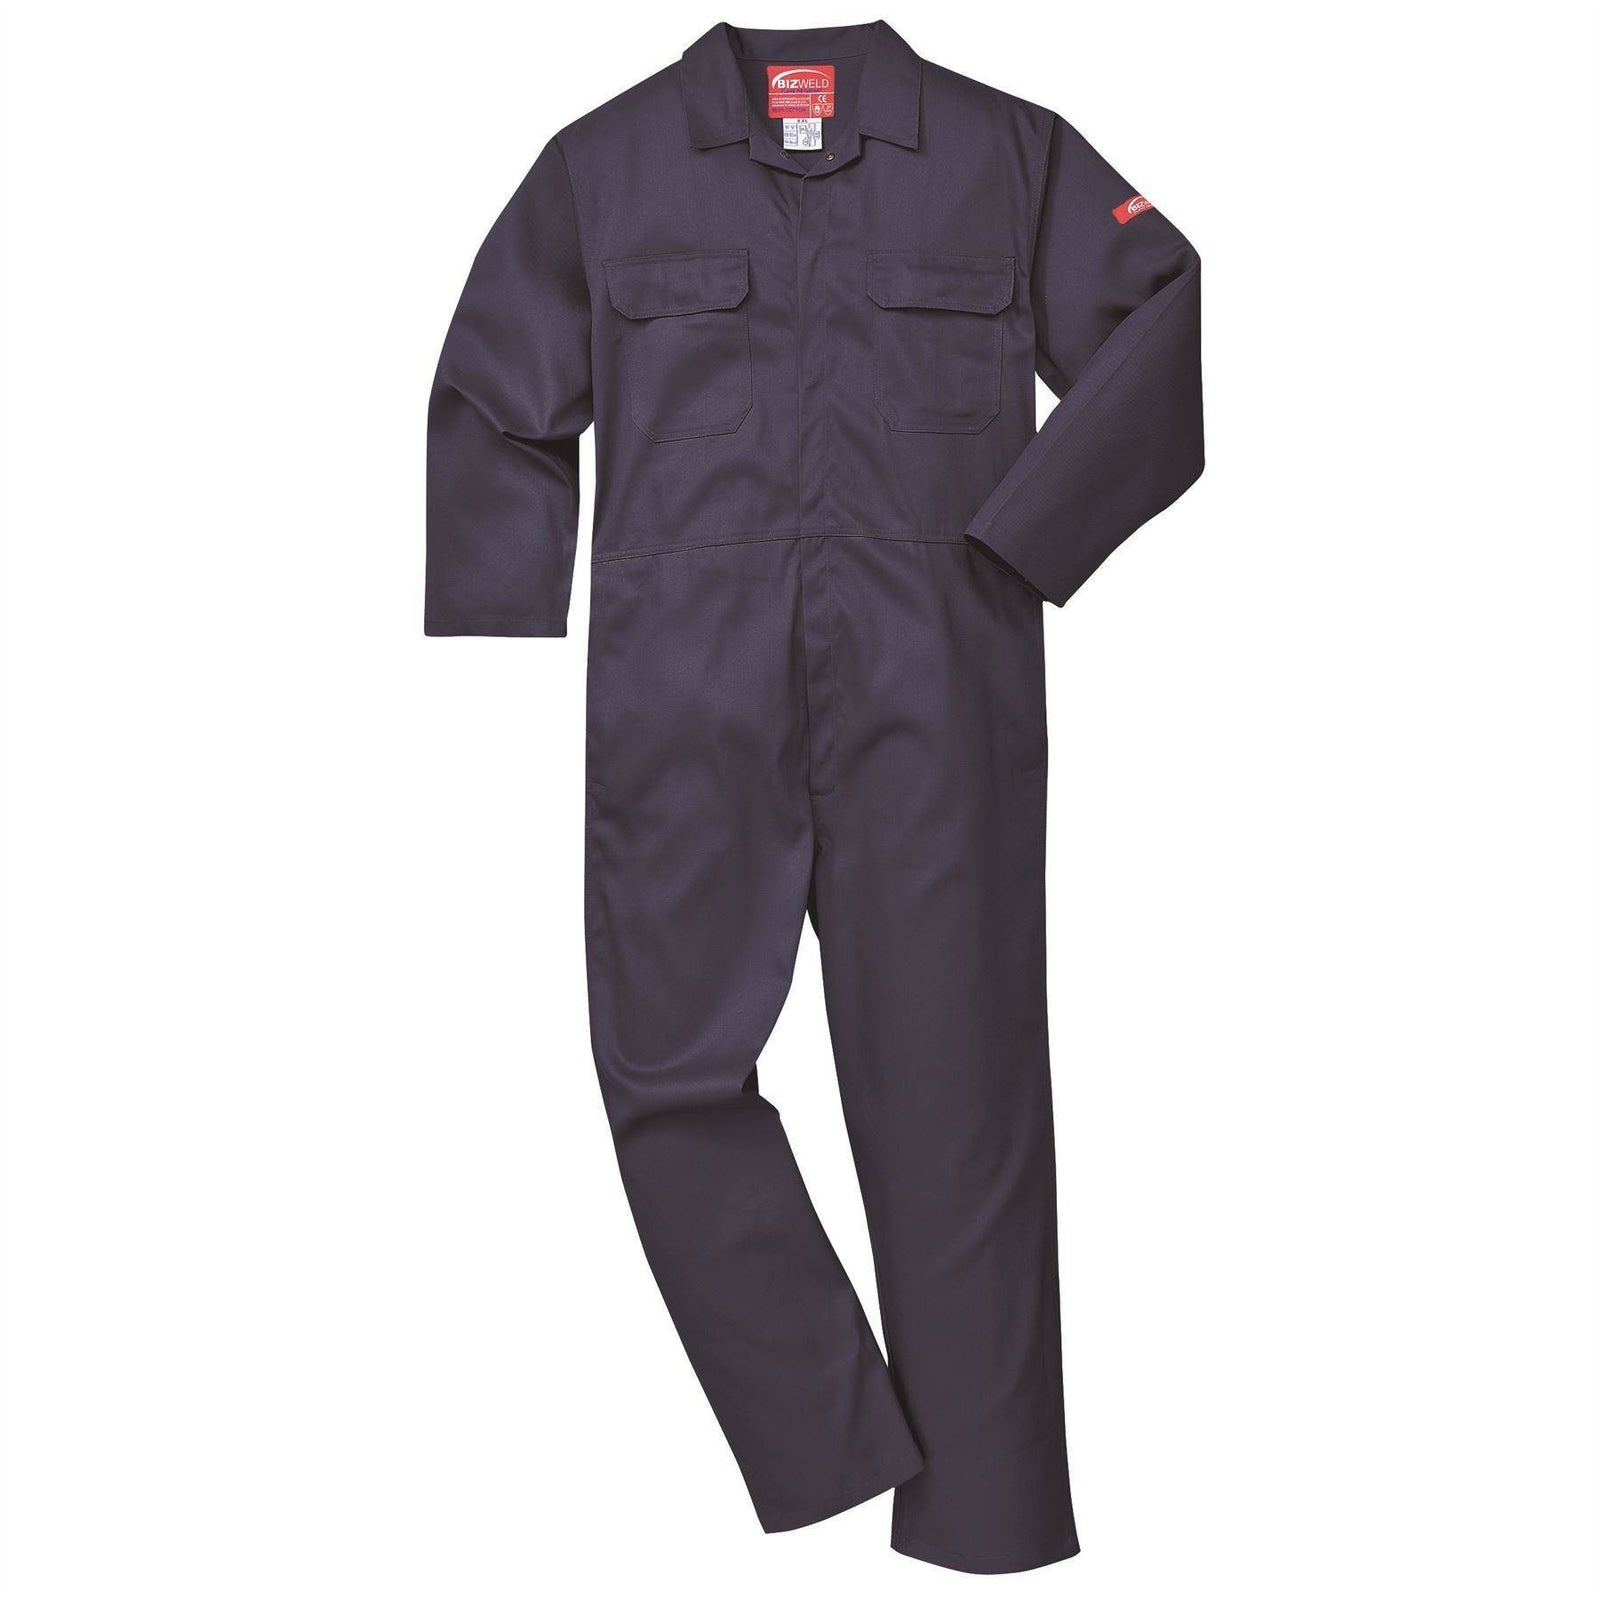 Portwest Bizweld Flame Resistant Coverall BIZ1 - reid outdoors